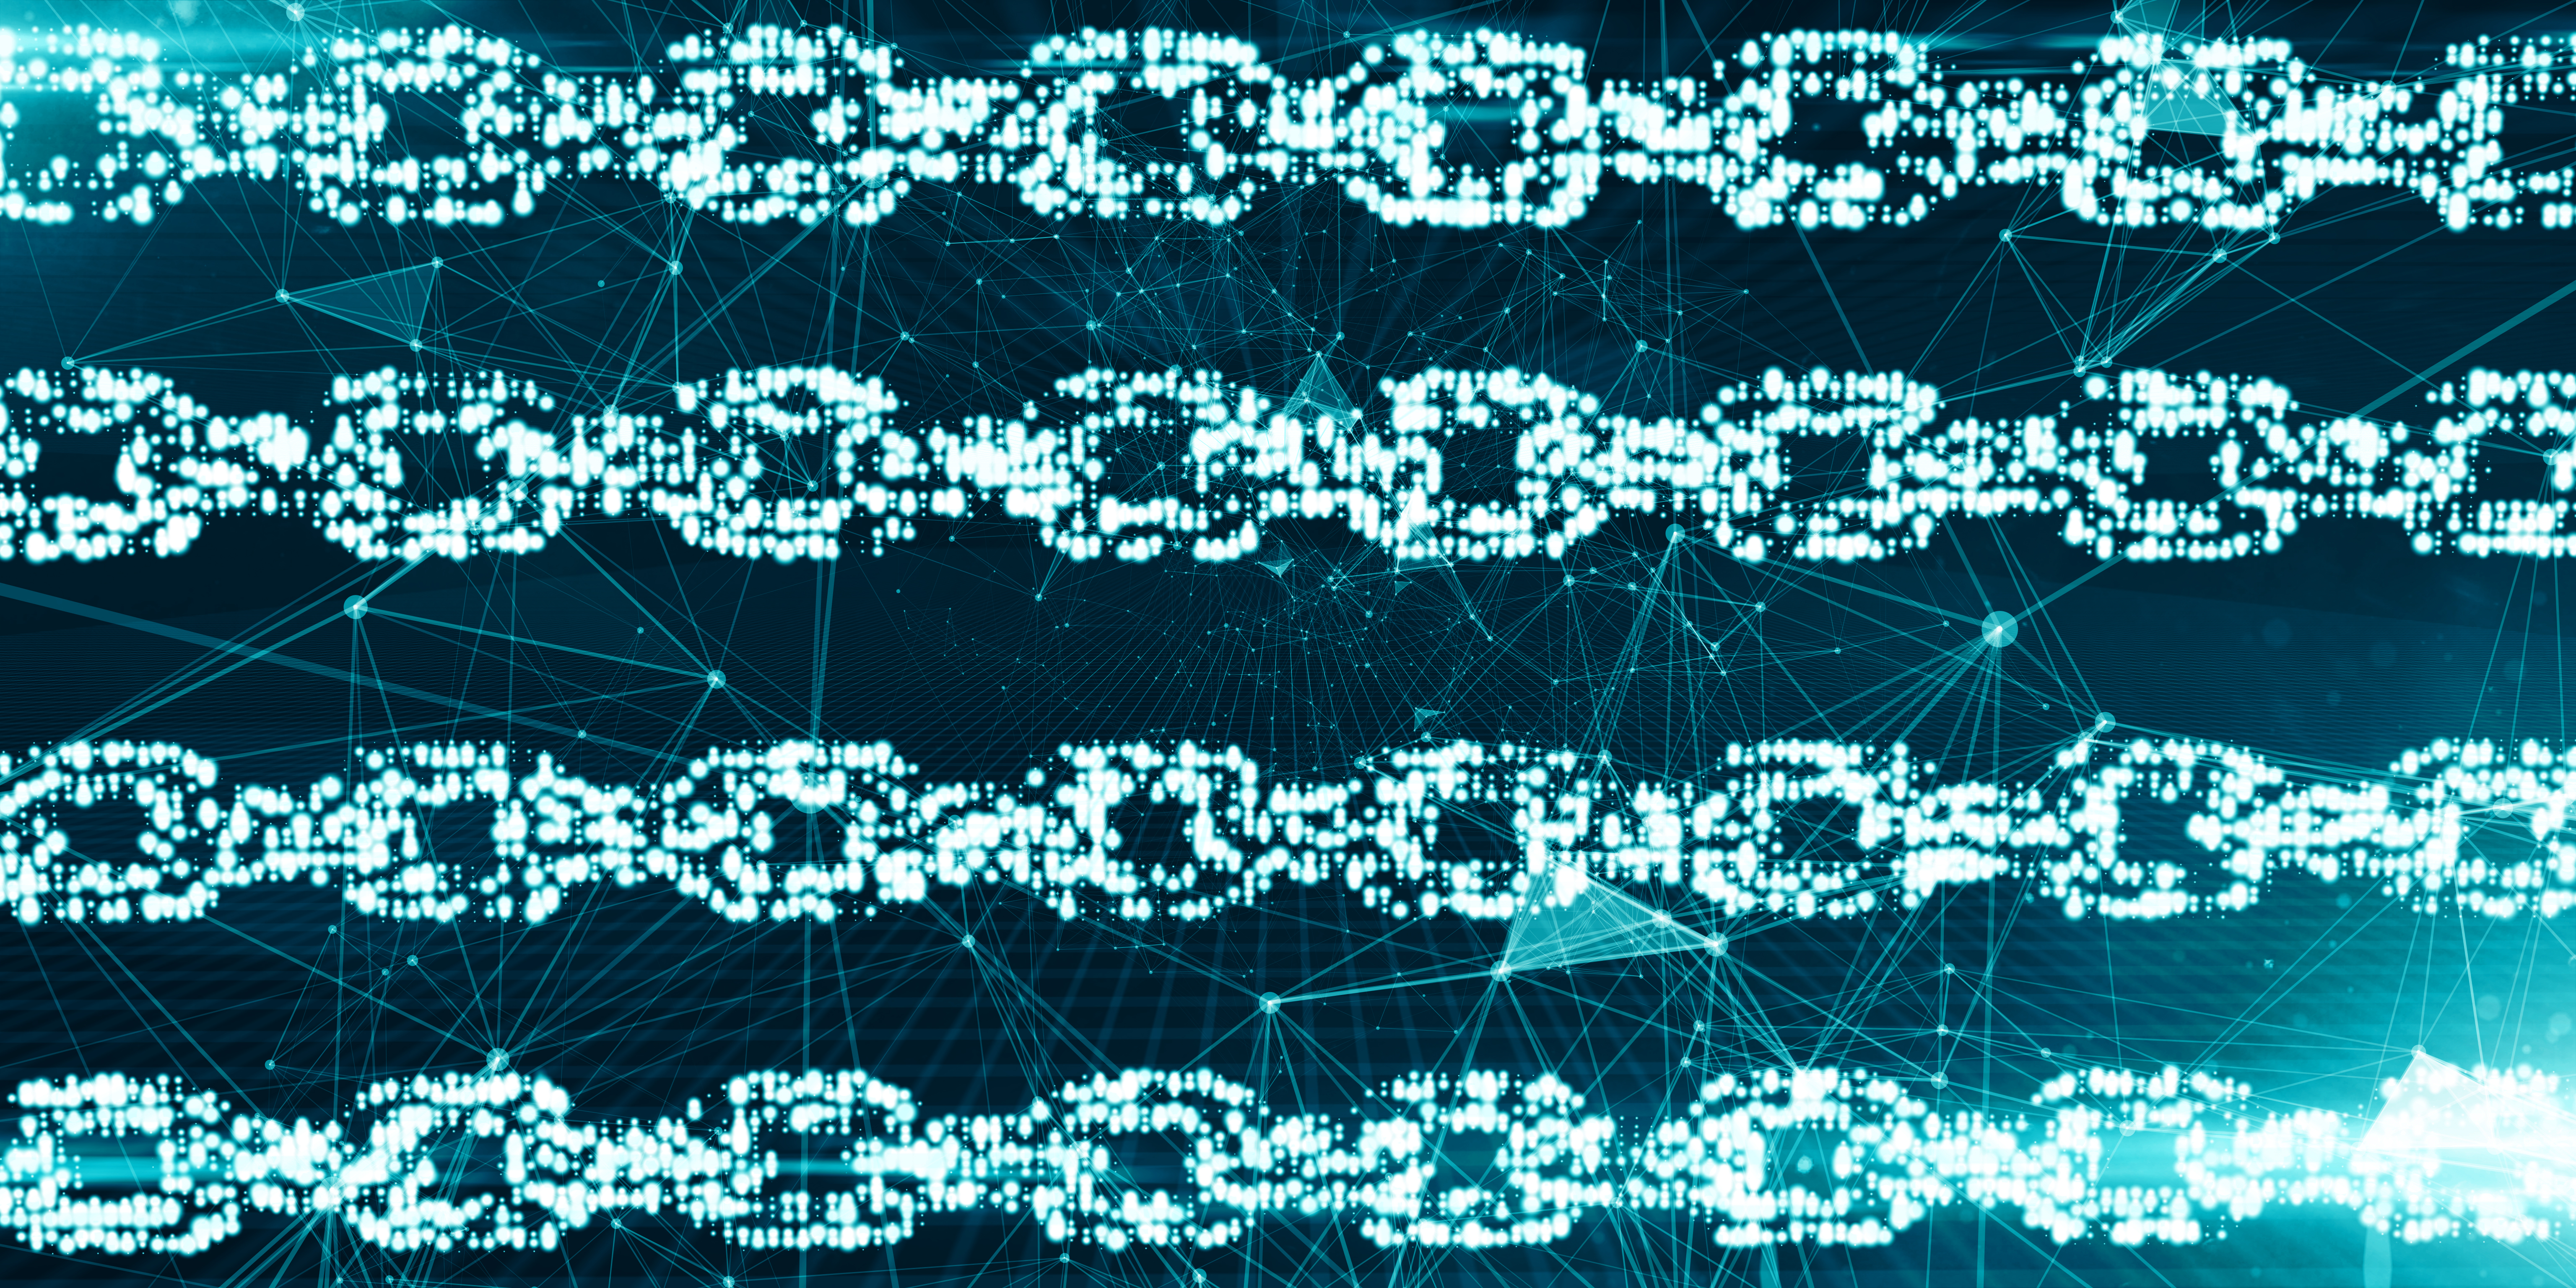 Stylized image of a network standing for blockchain encryption